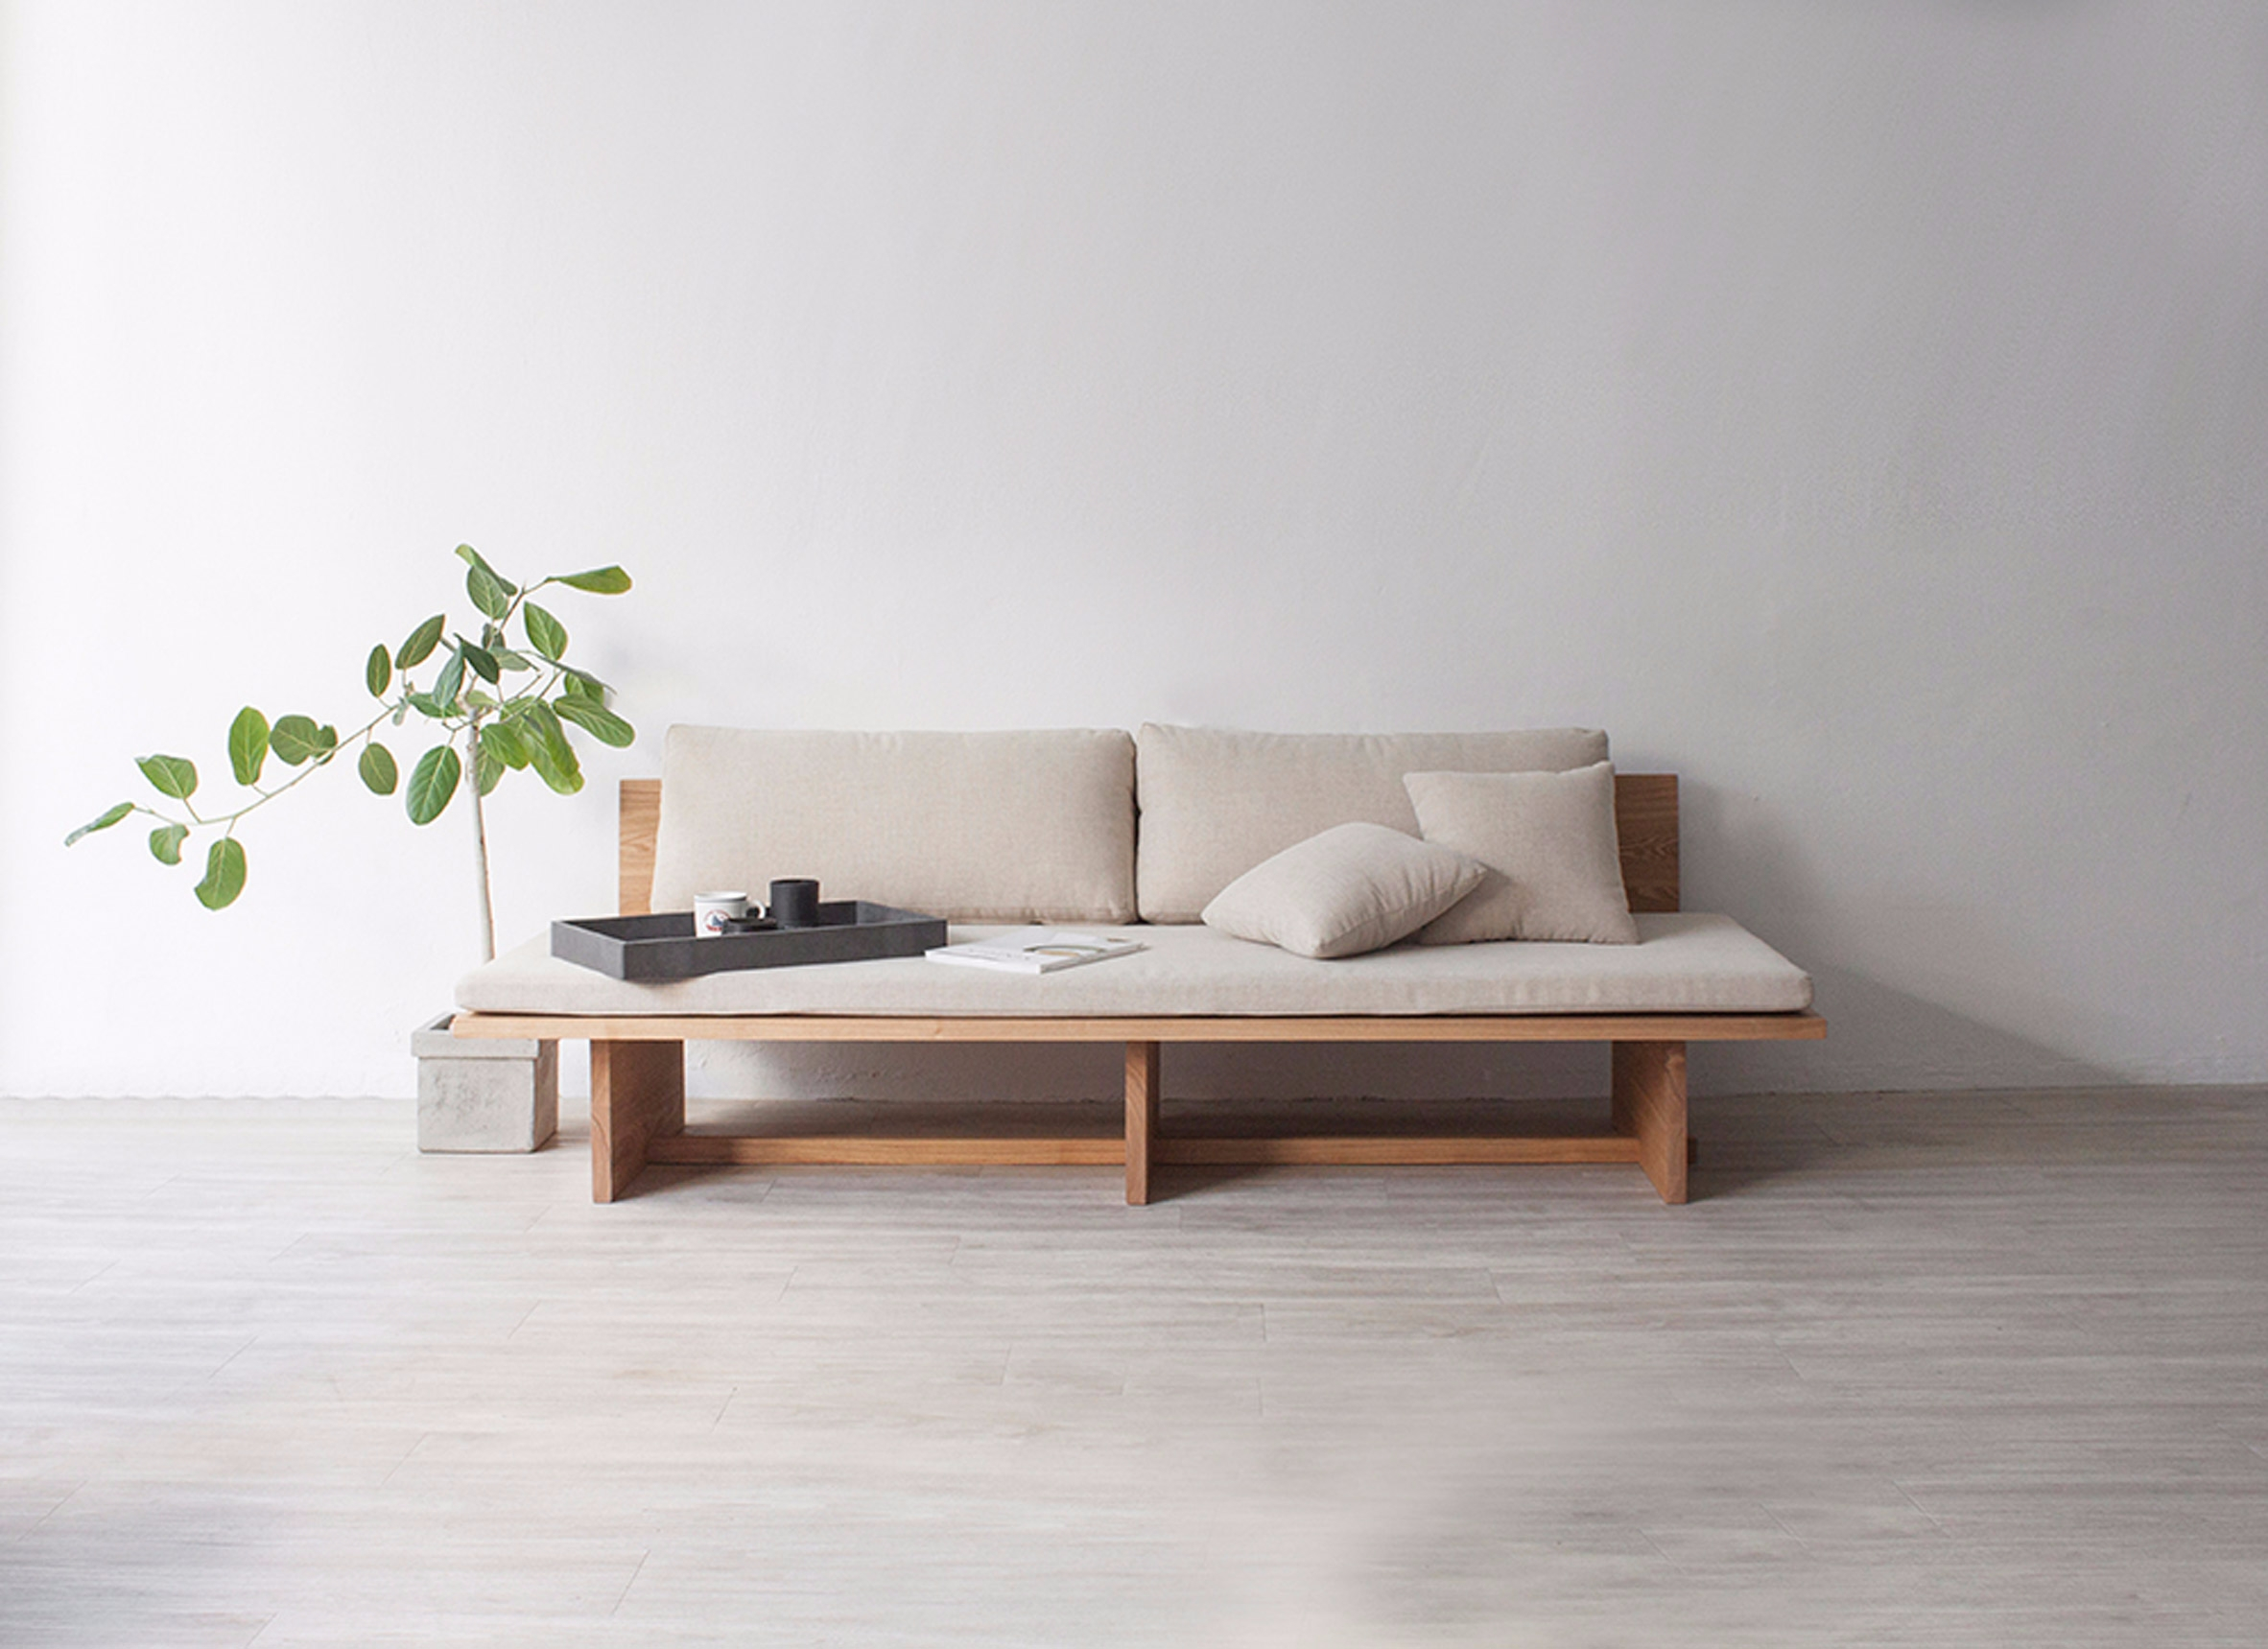 Daybed Hyung Suk Cho - daybed, bed - mauudhi | ello